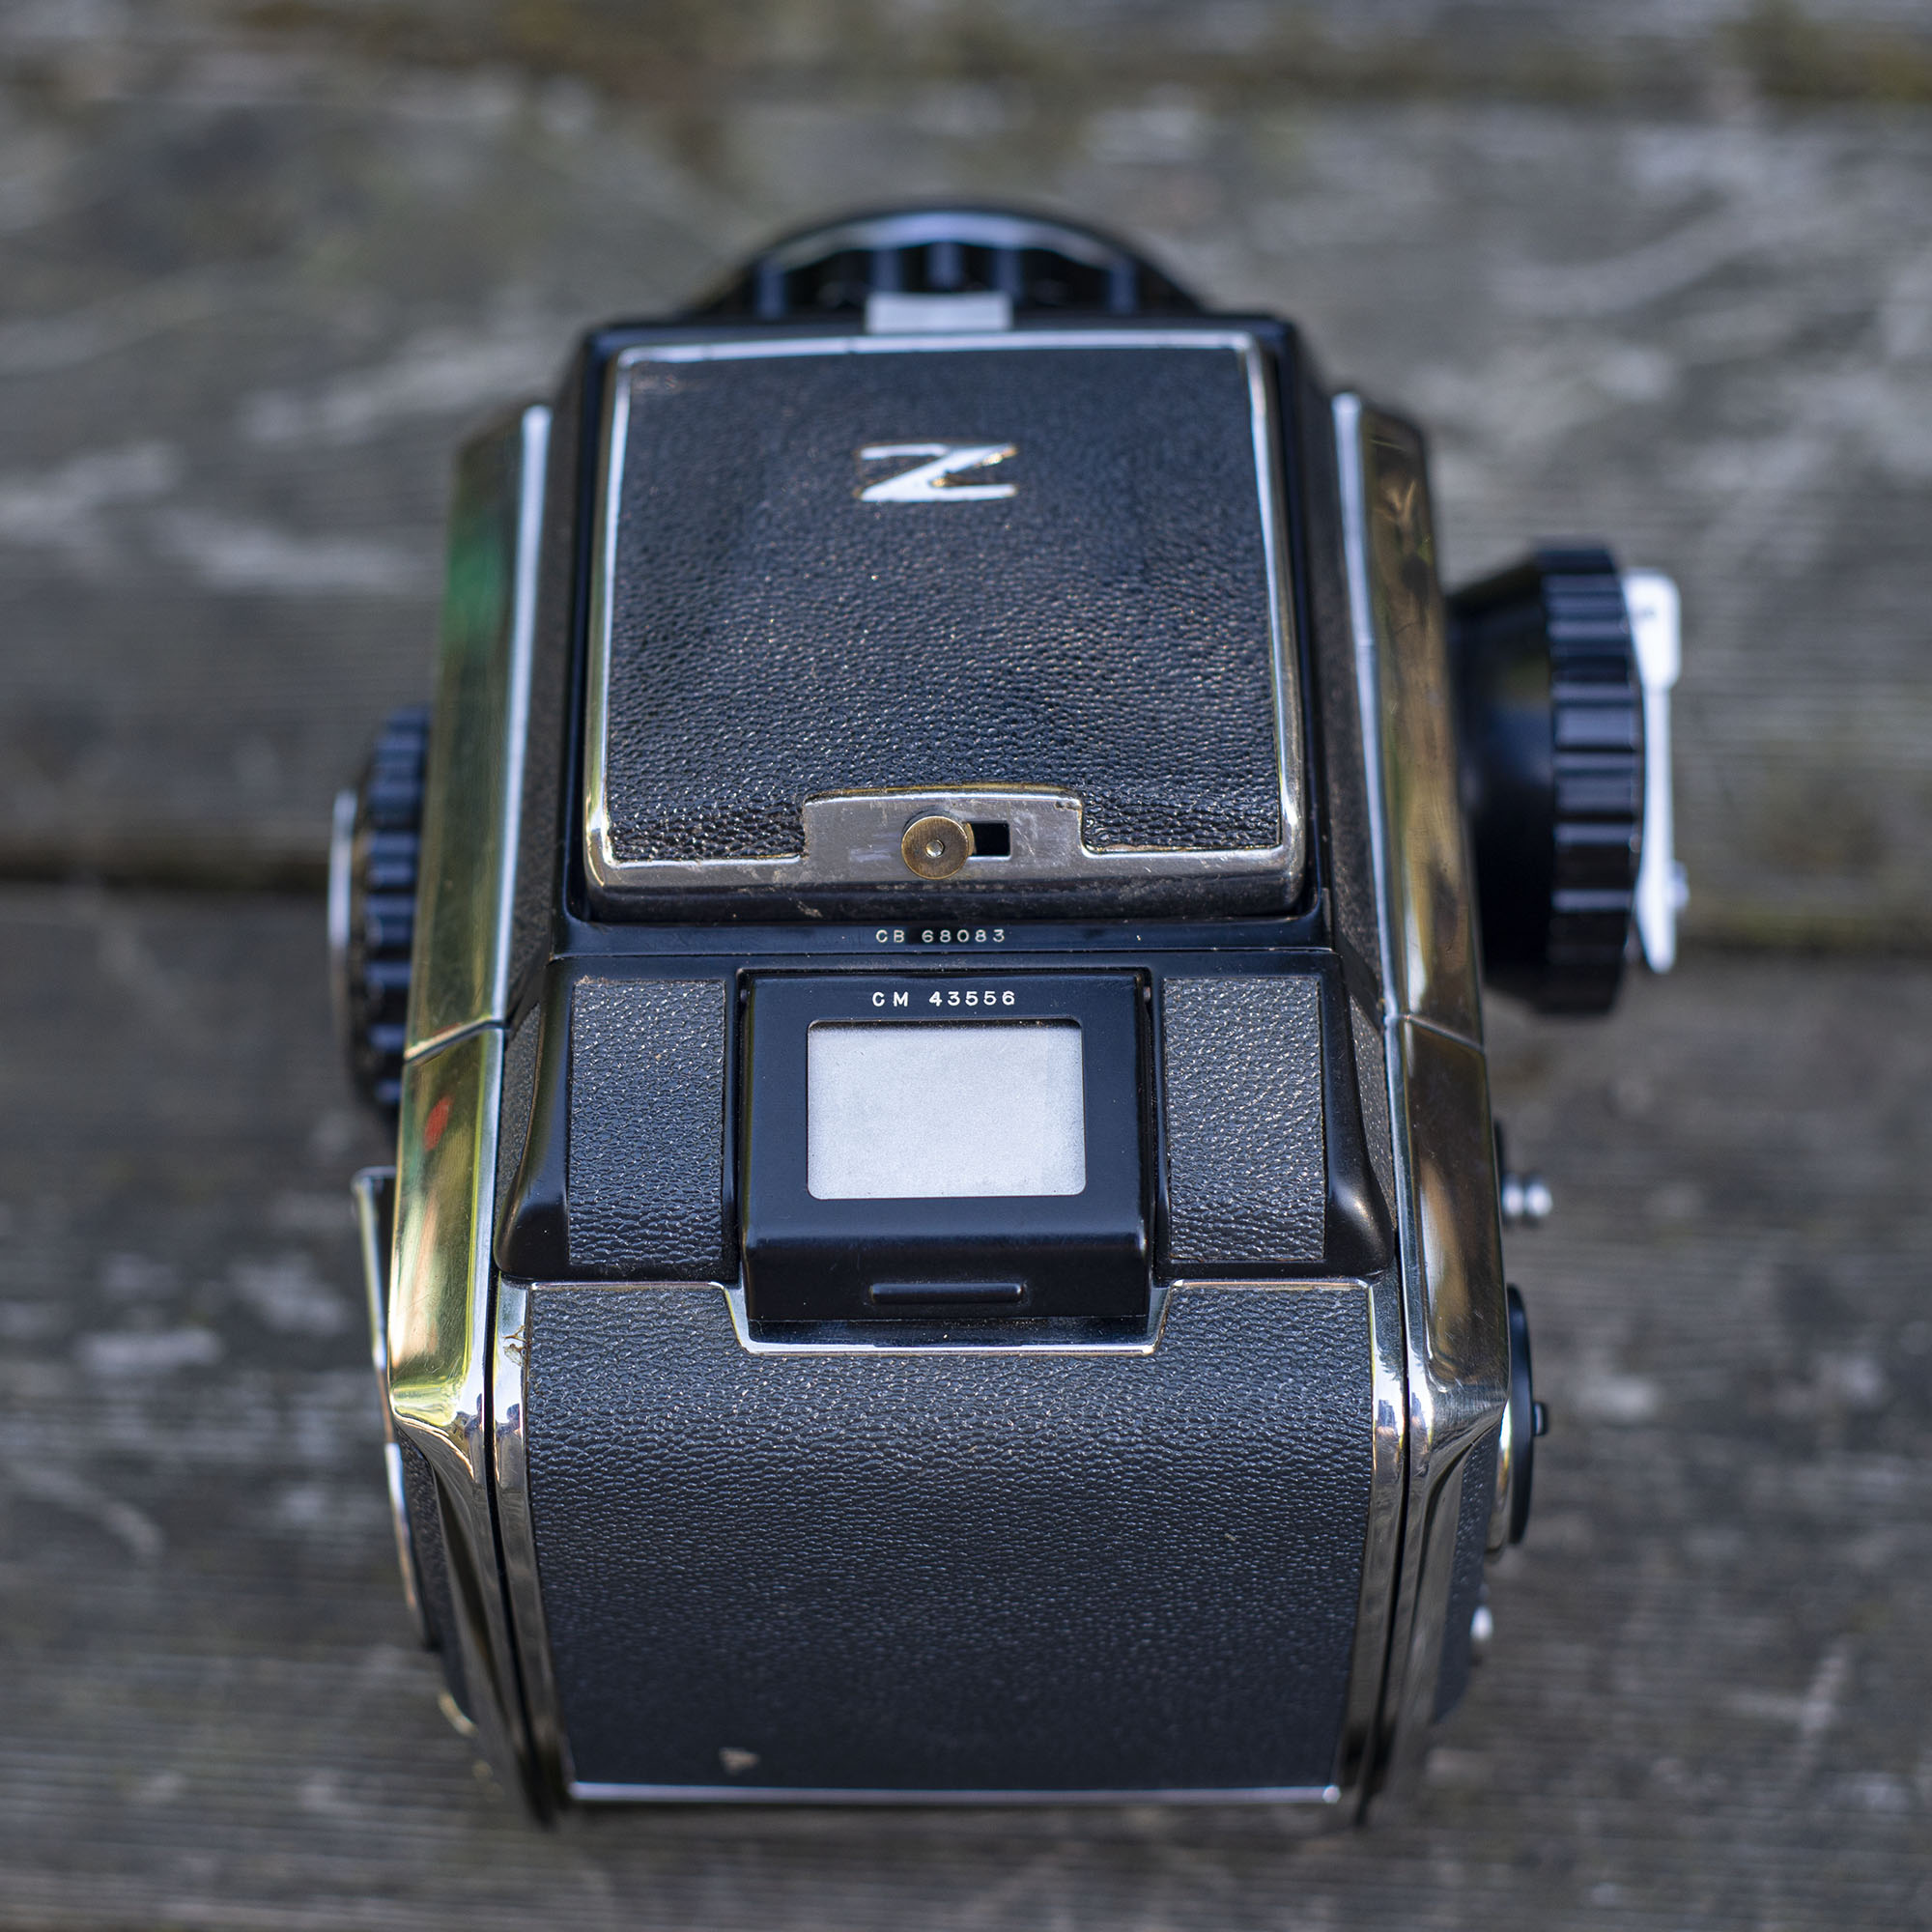 Bronica S2 rear top view